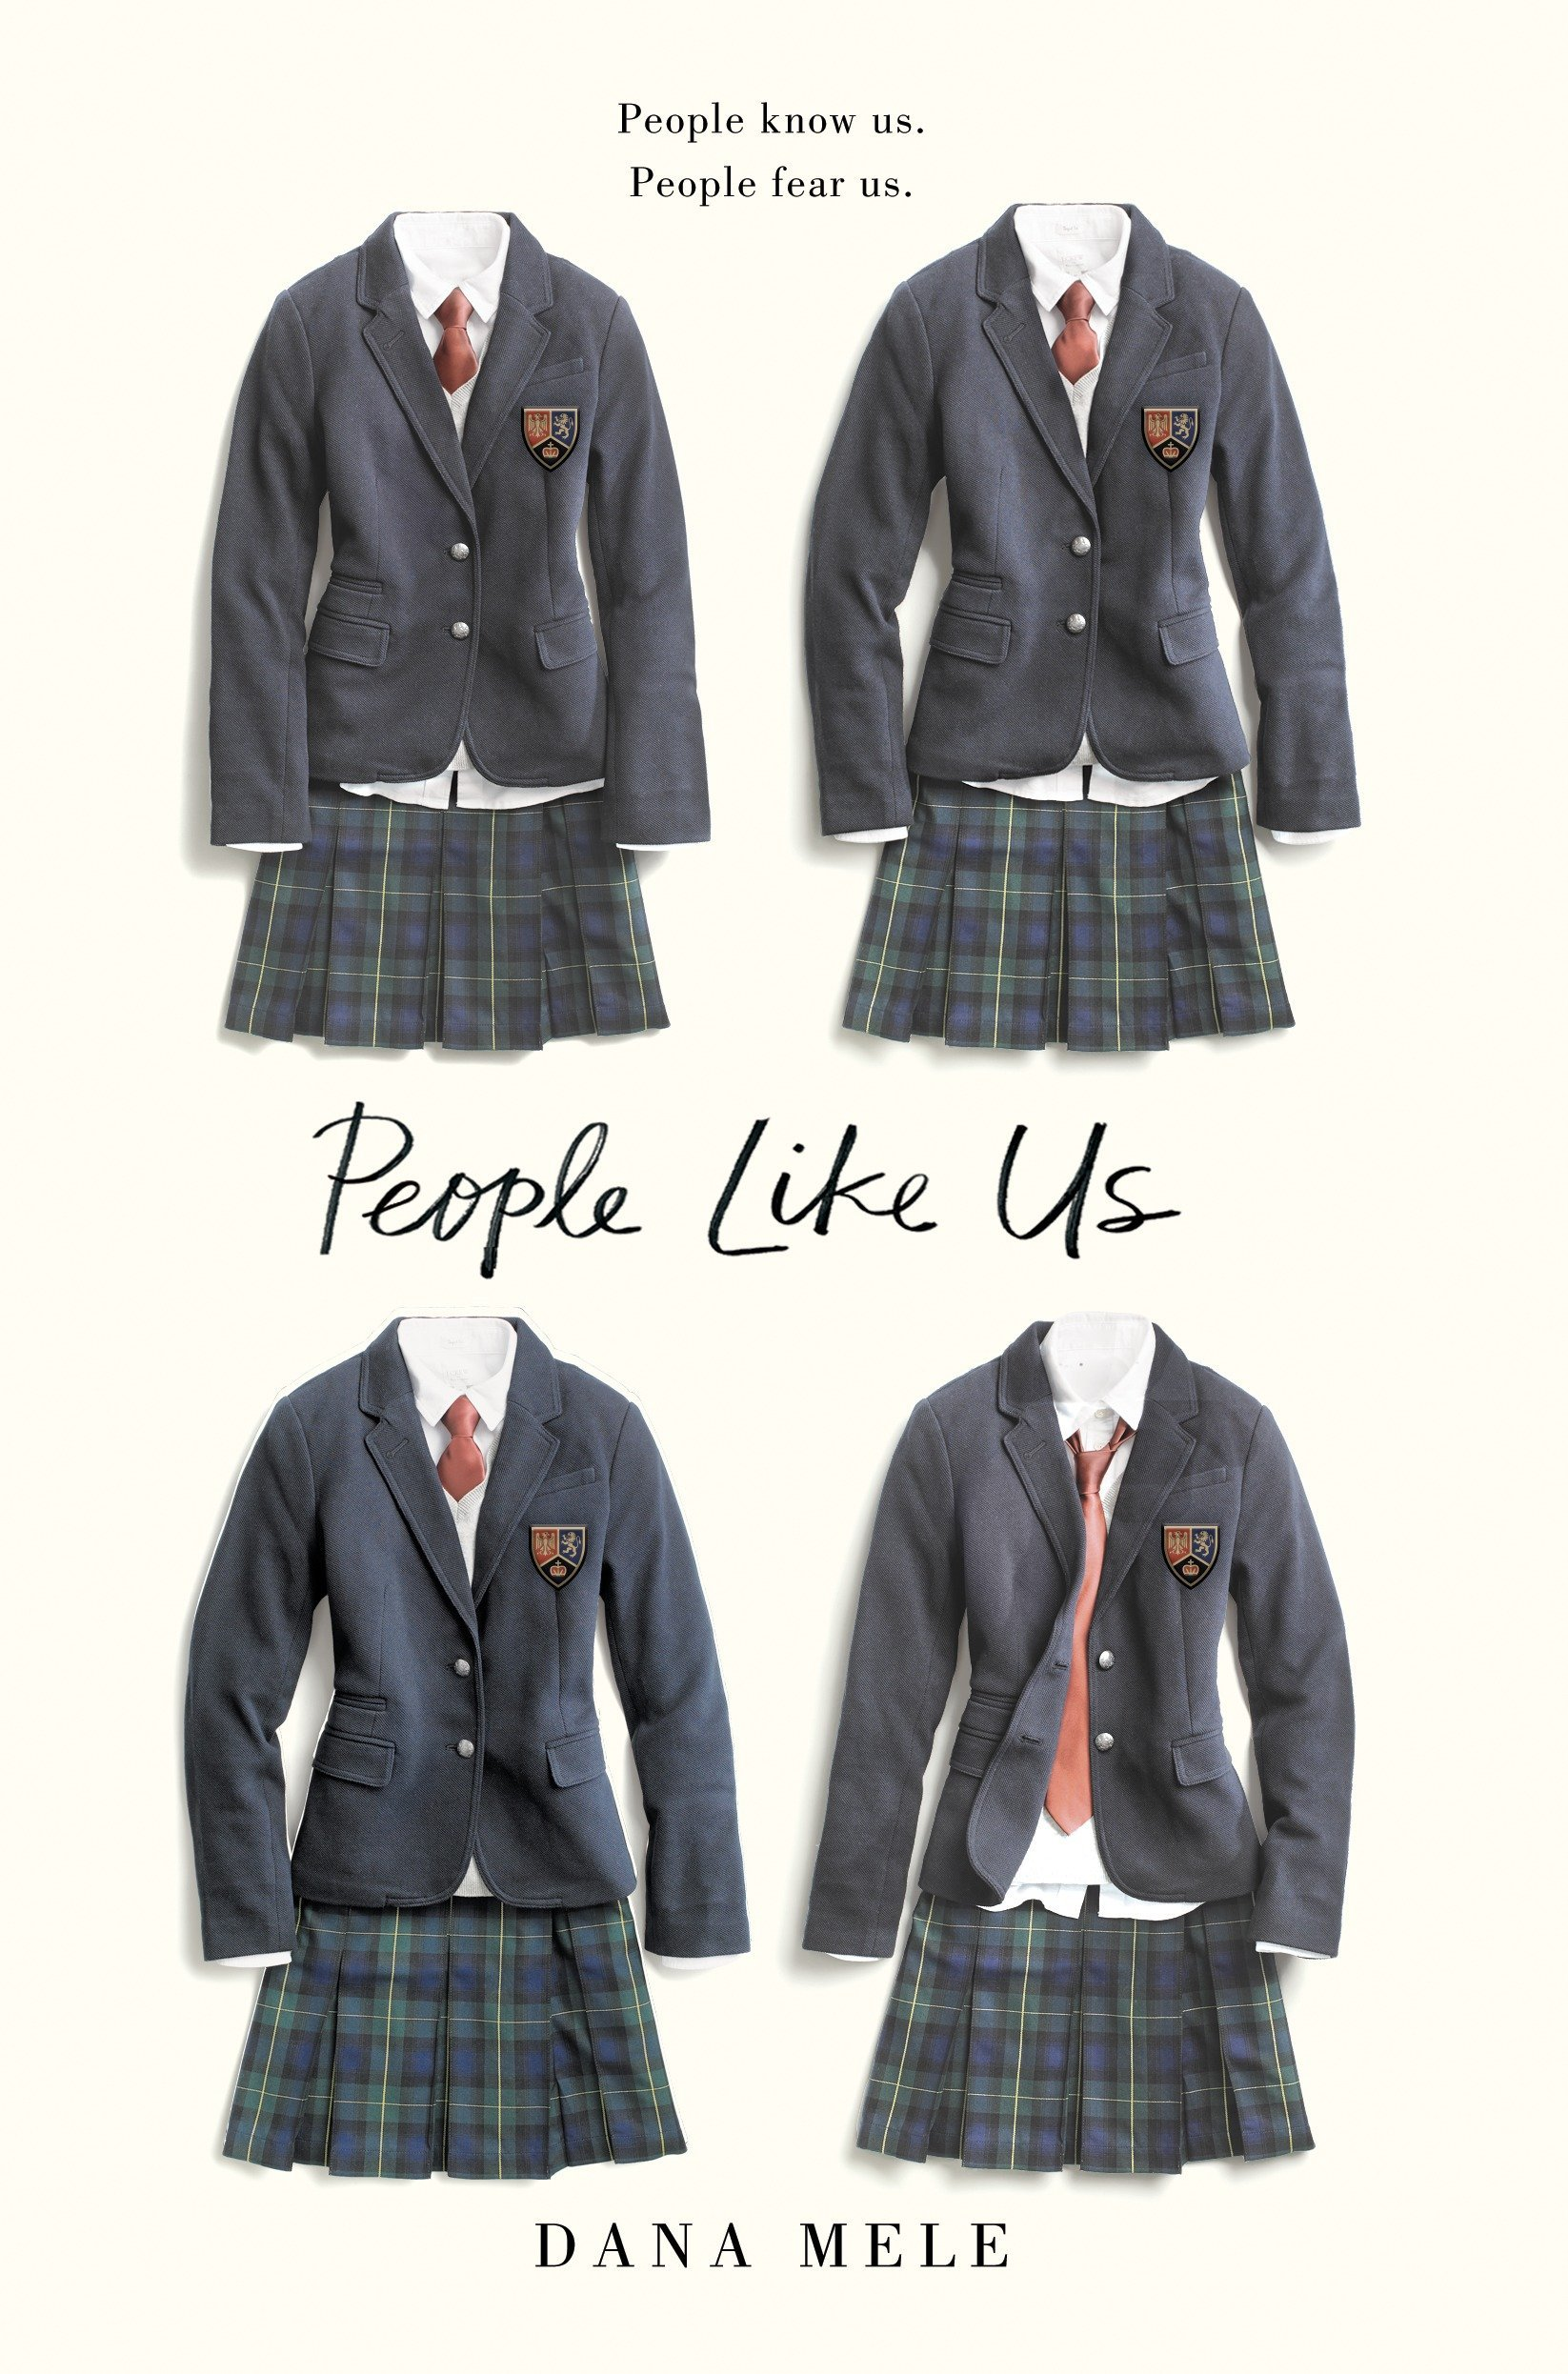 The People Like Us